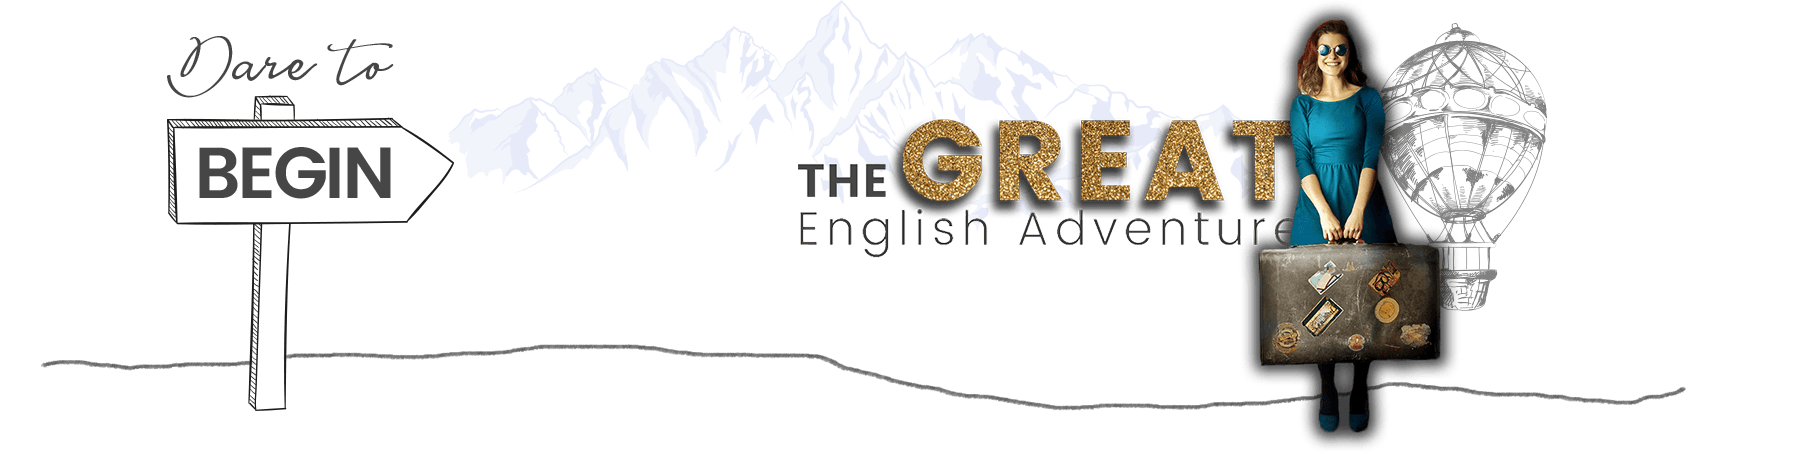 Solutions to English Literacy, Great English Adventure